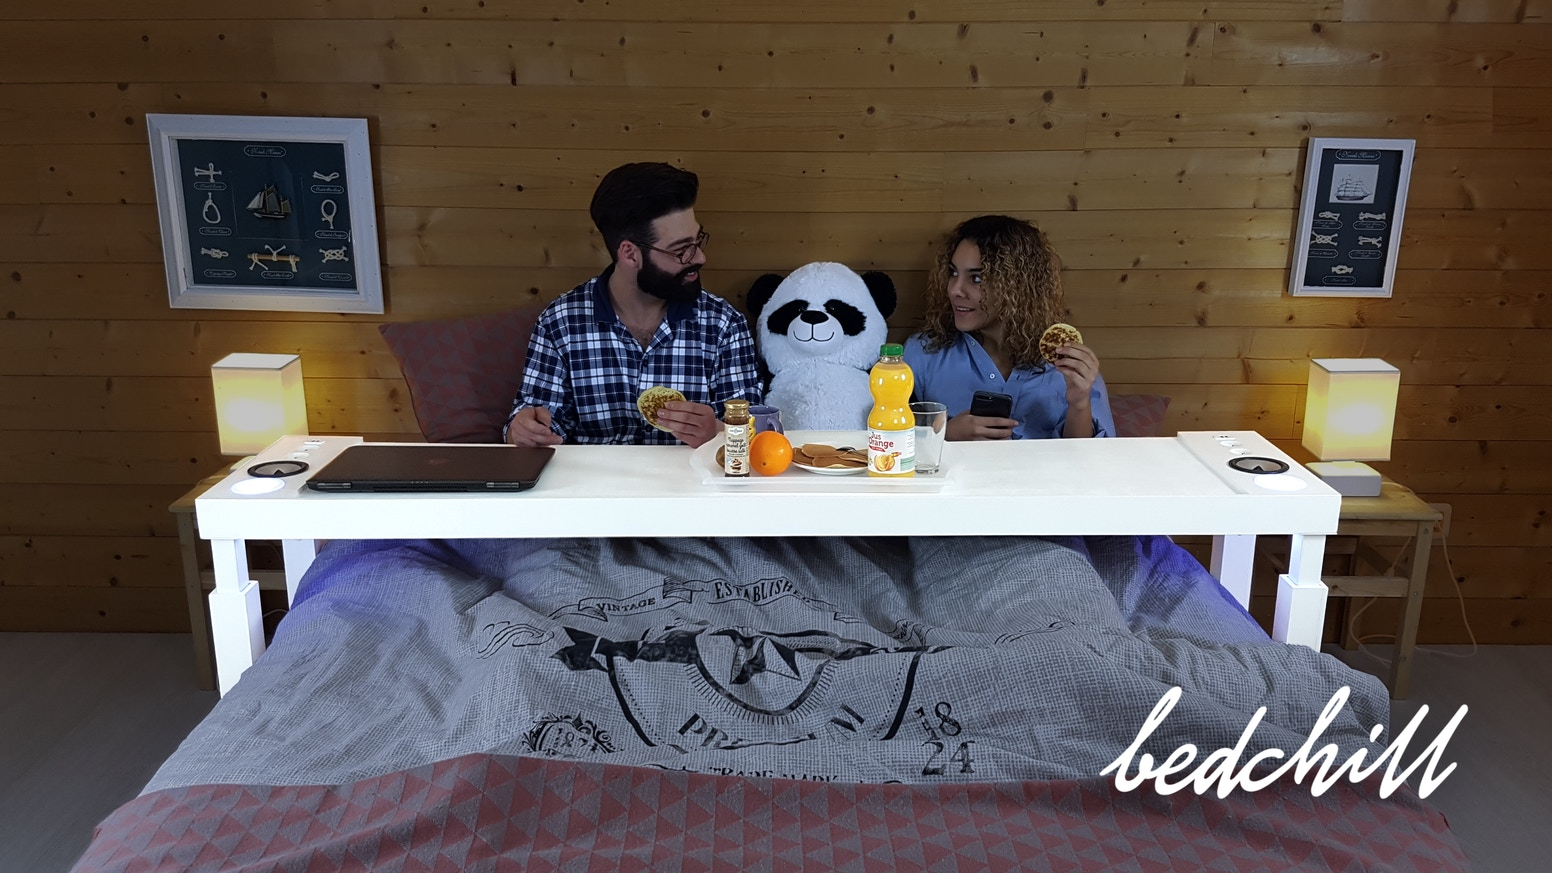 Eat, use your laptop, binge-watch, work, play, read, listen to music... Bedchill turns your bed into a second living room and office